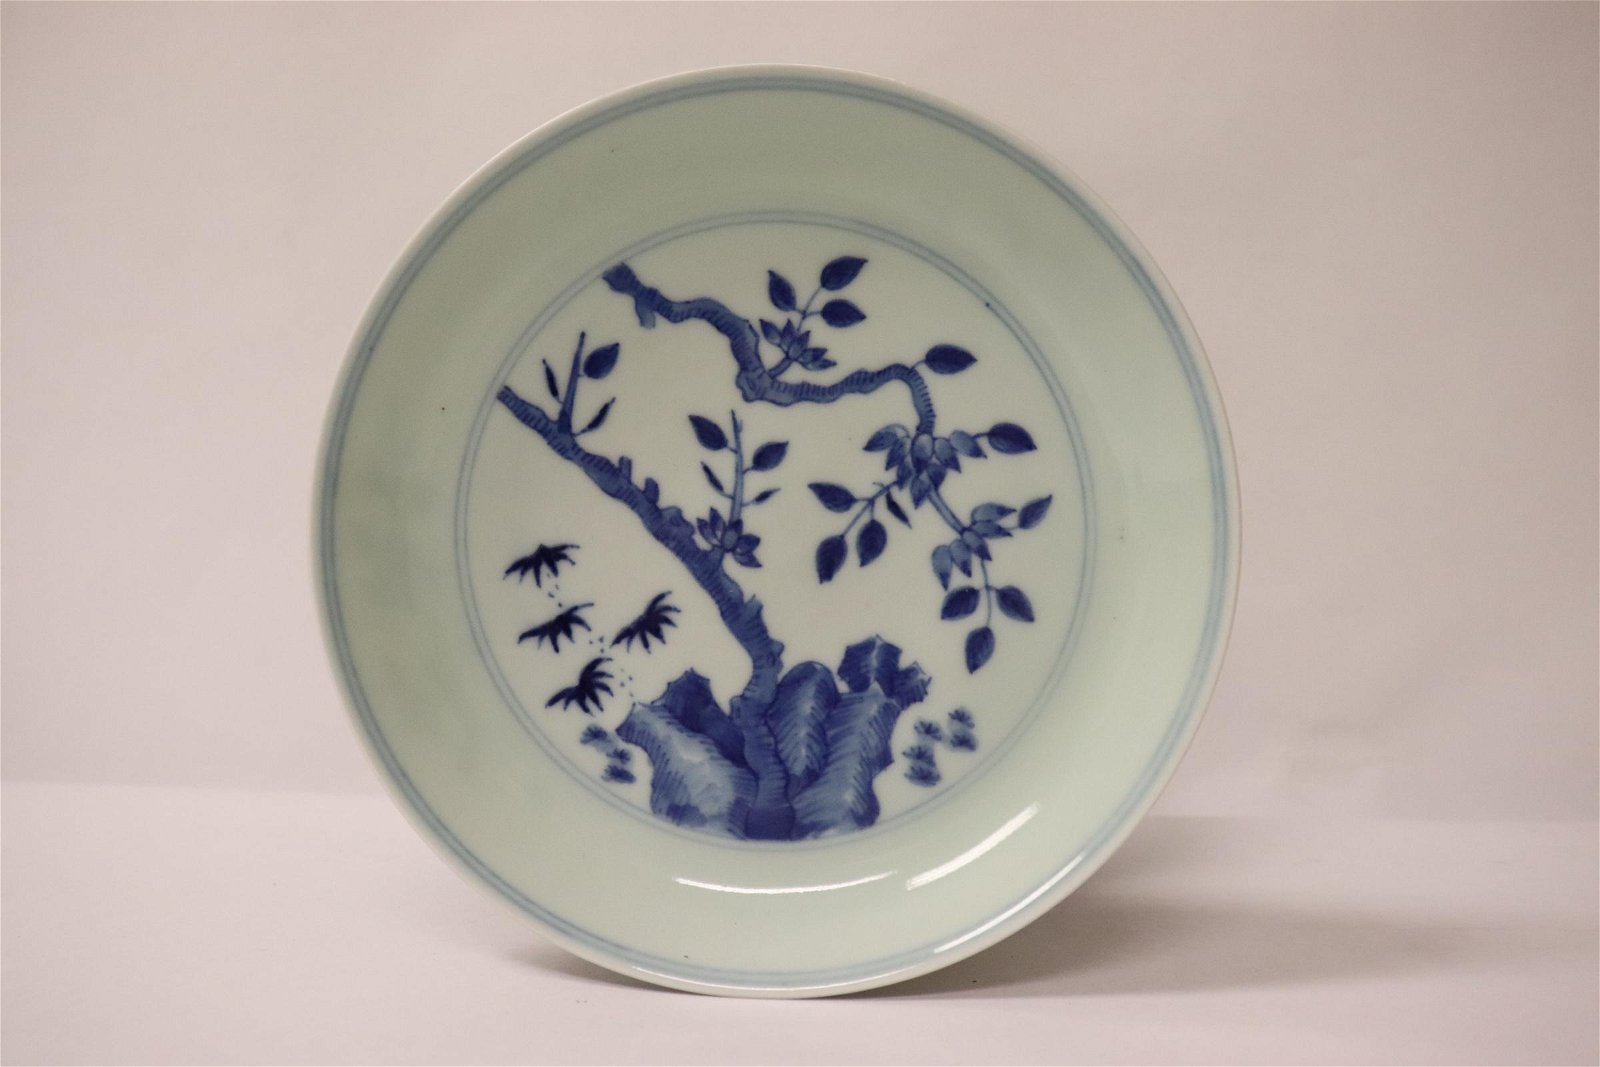 A Chinese small blue and white porcelain plate